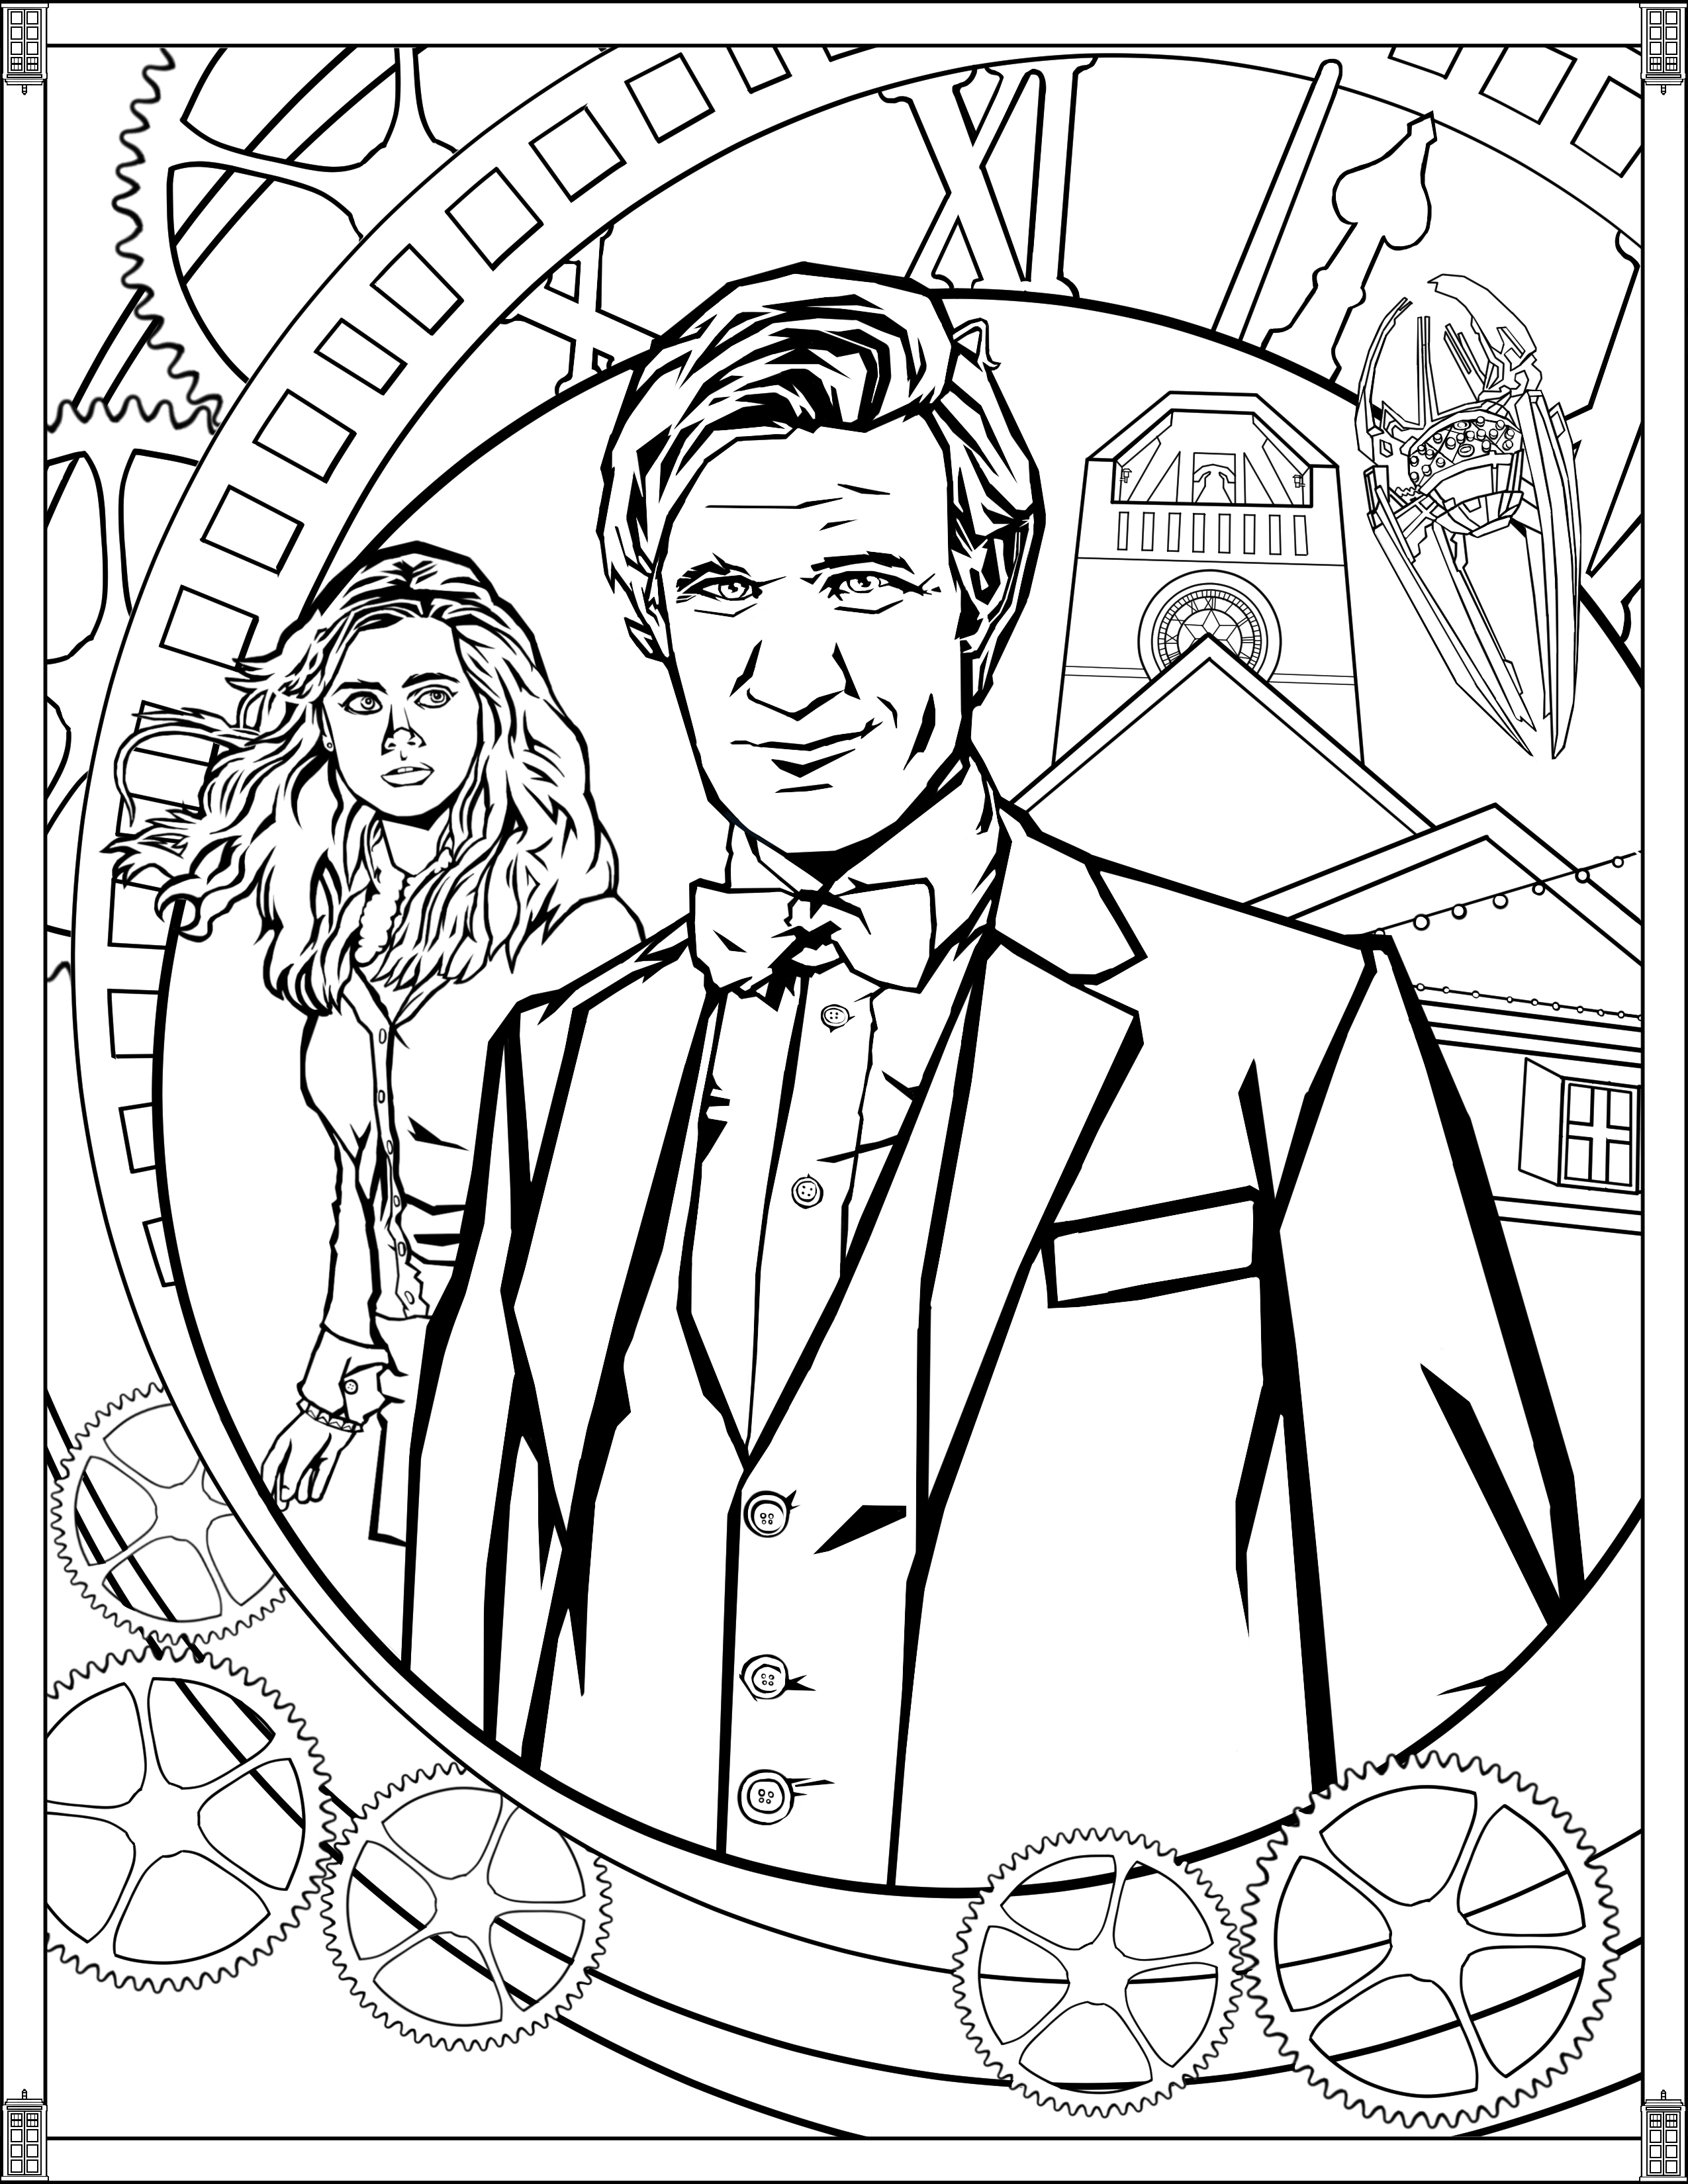 coloring pages doctor who doctor who wibbly wobbly timey wimey coloring pages coloring who doctor pages